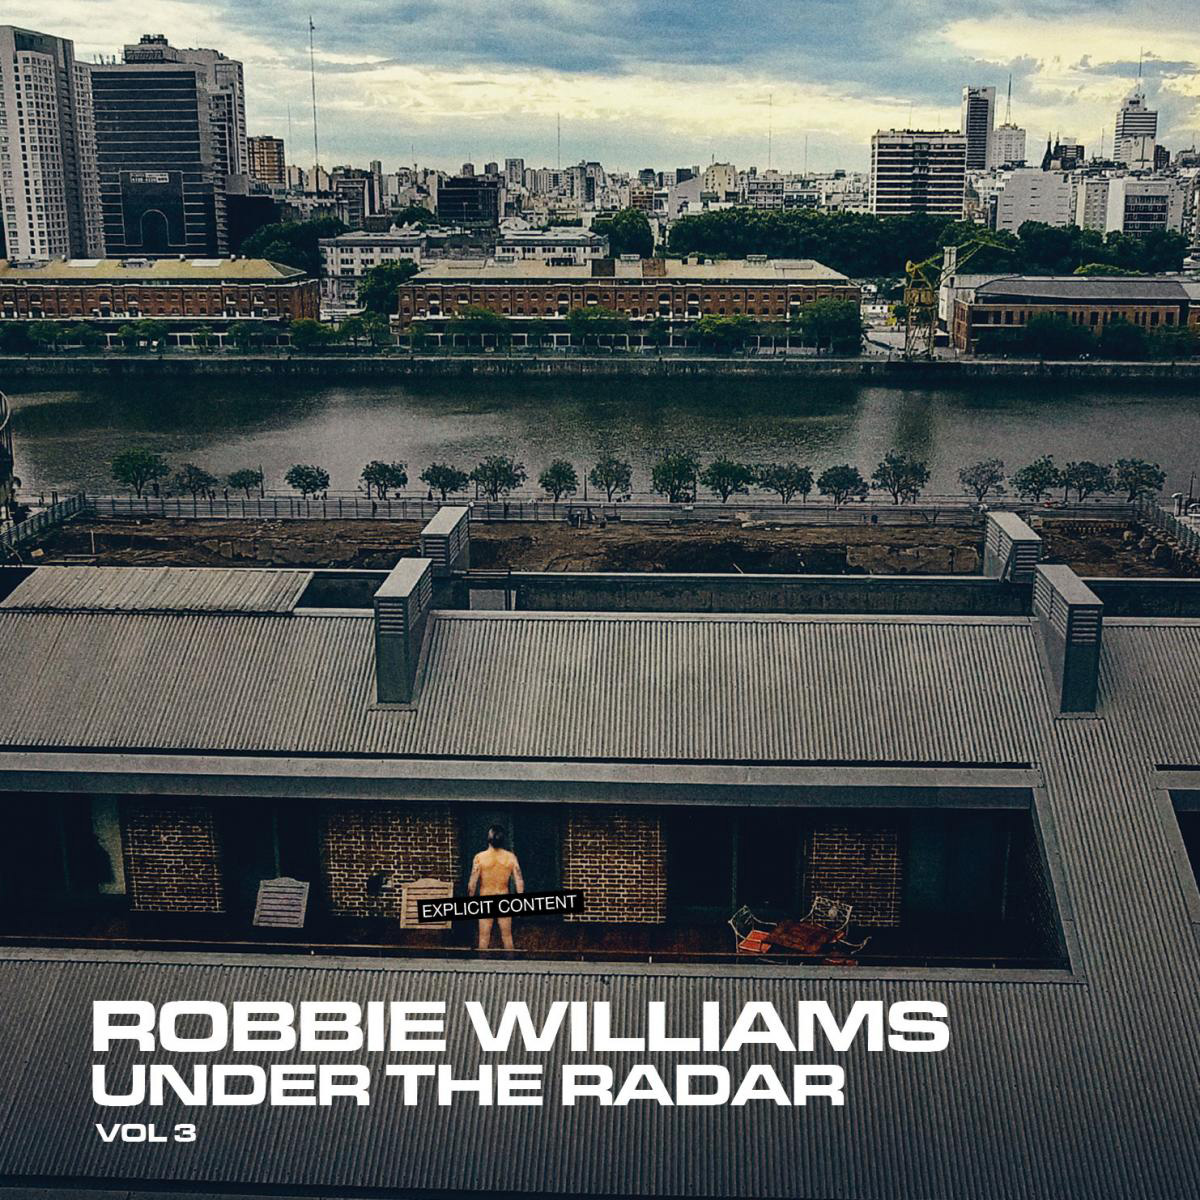 2018 11 28 under the radar volume 3 editions 3